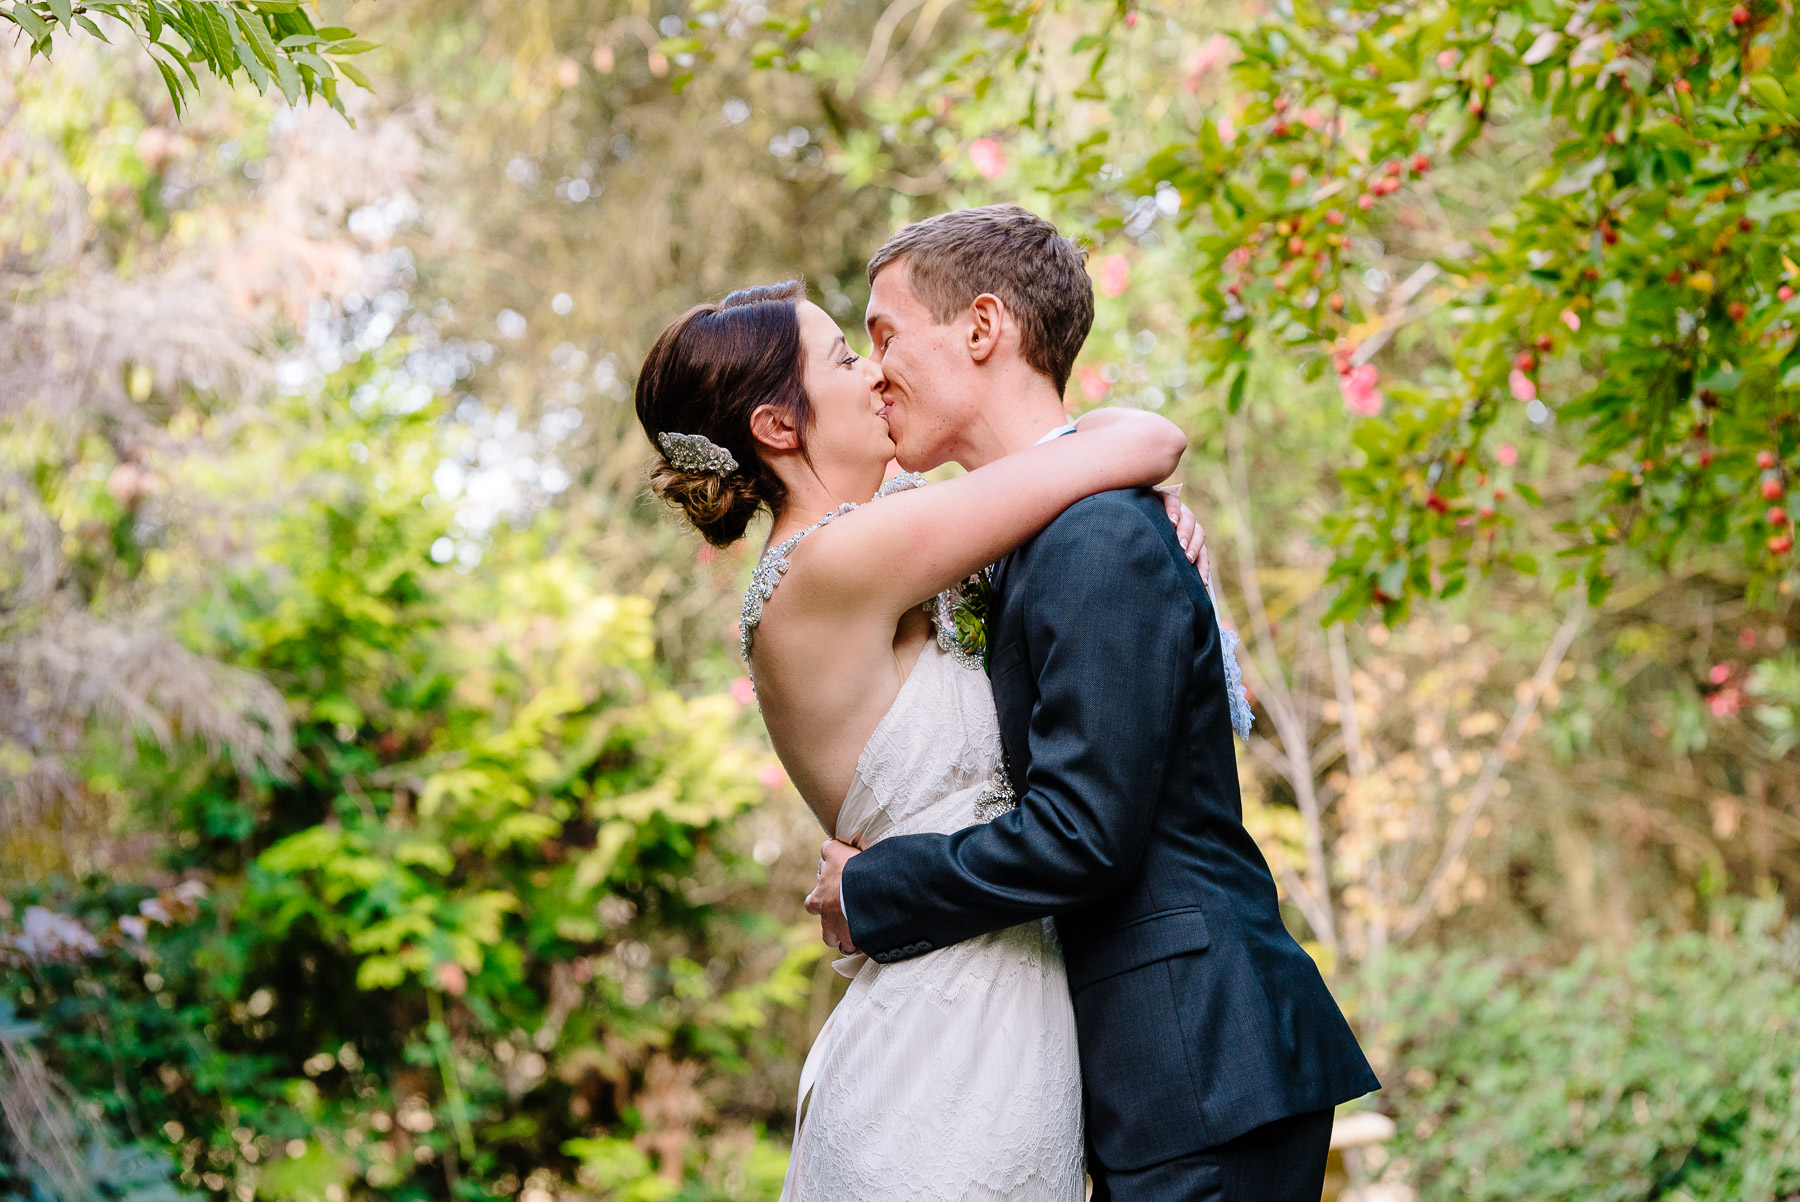 Justin_and_Jim_Best_Of_Wedding_Photography-48.jpg